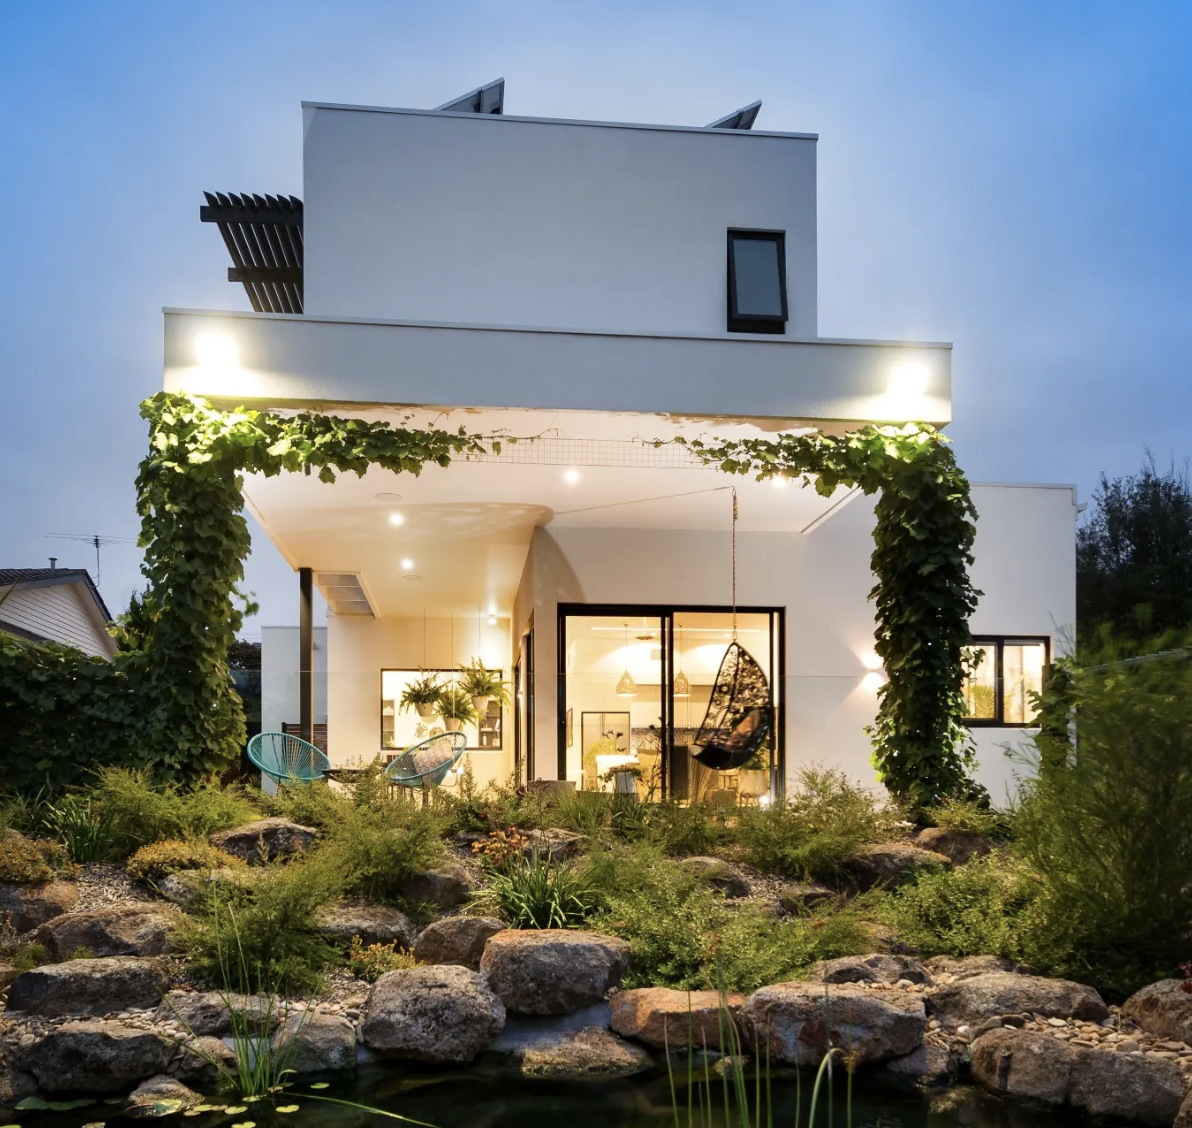 The Australian eco friendly white pebble house with its own billabong.